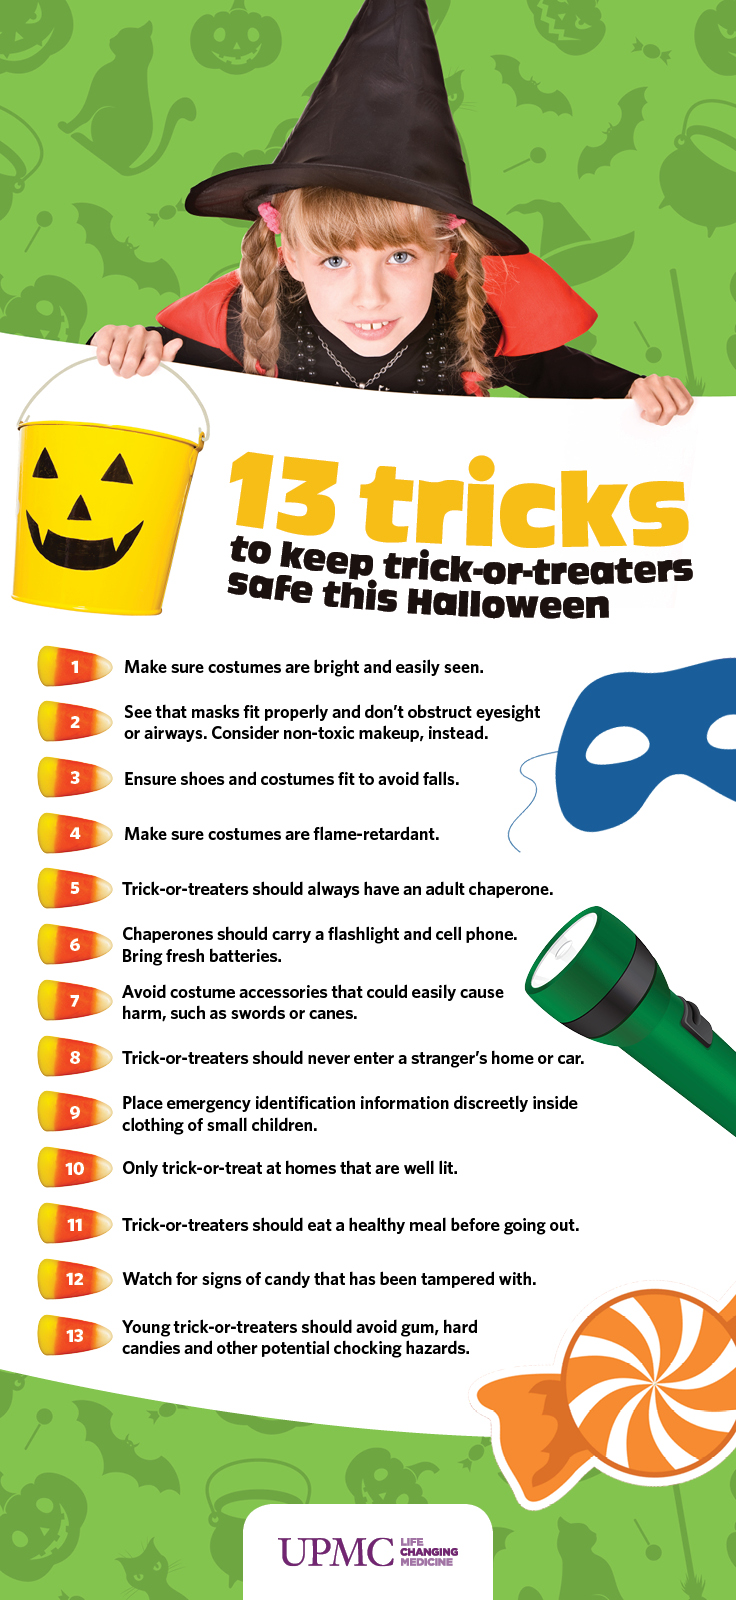 Tips to keep your trick-or-treaters safe this halloween.